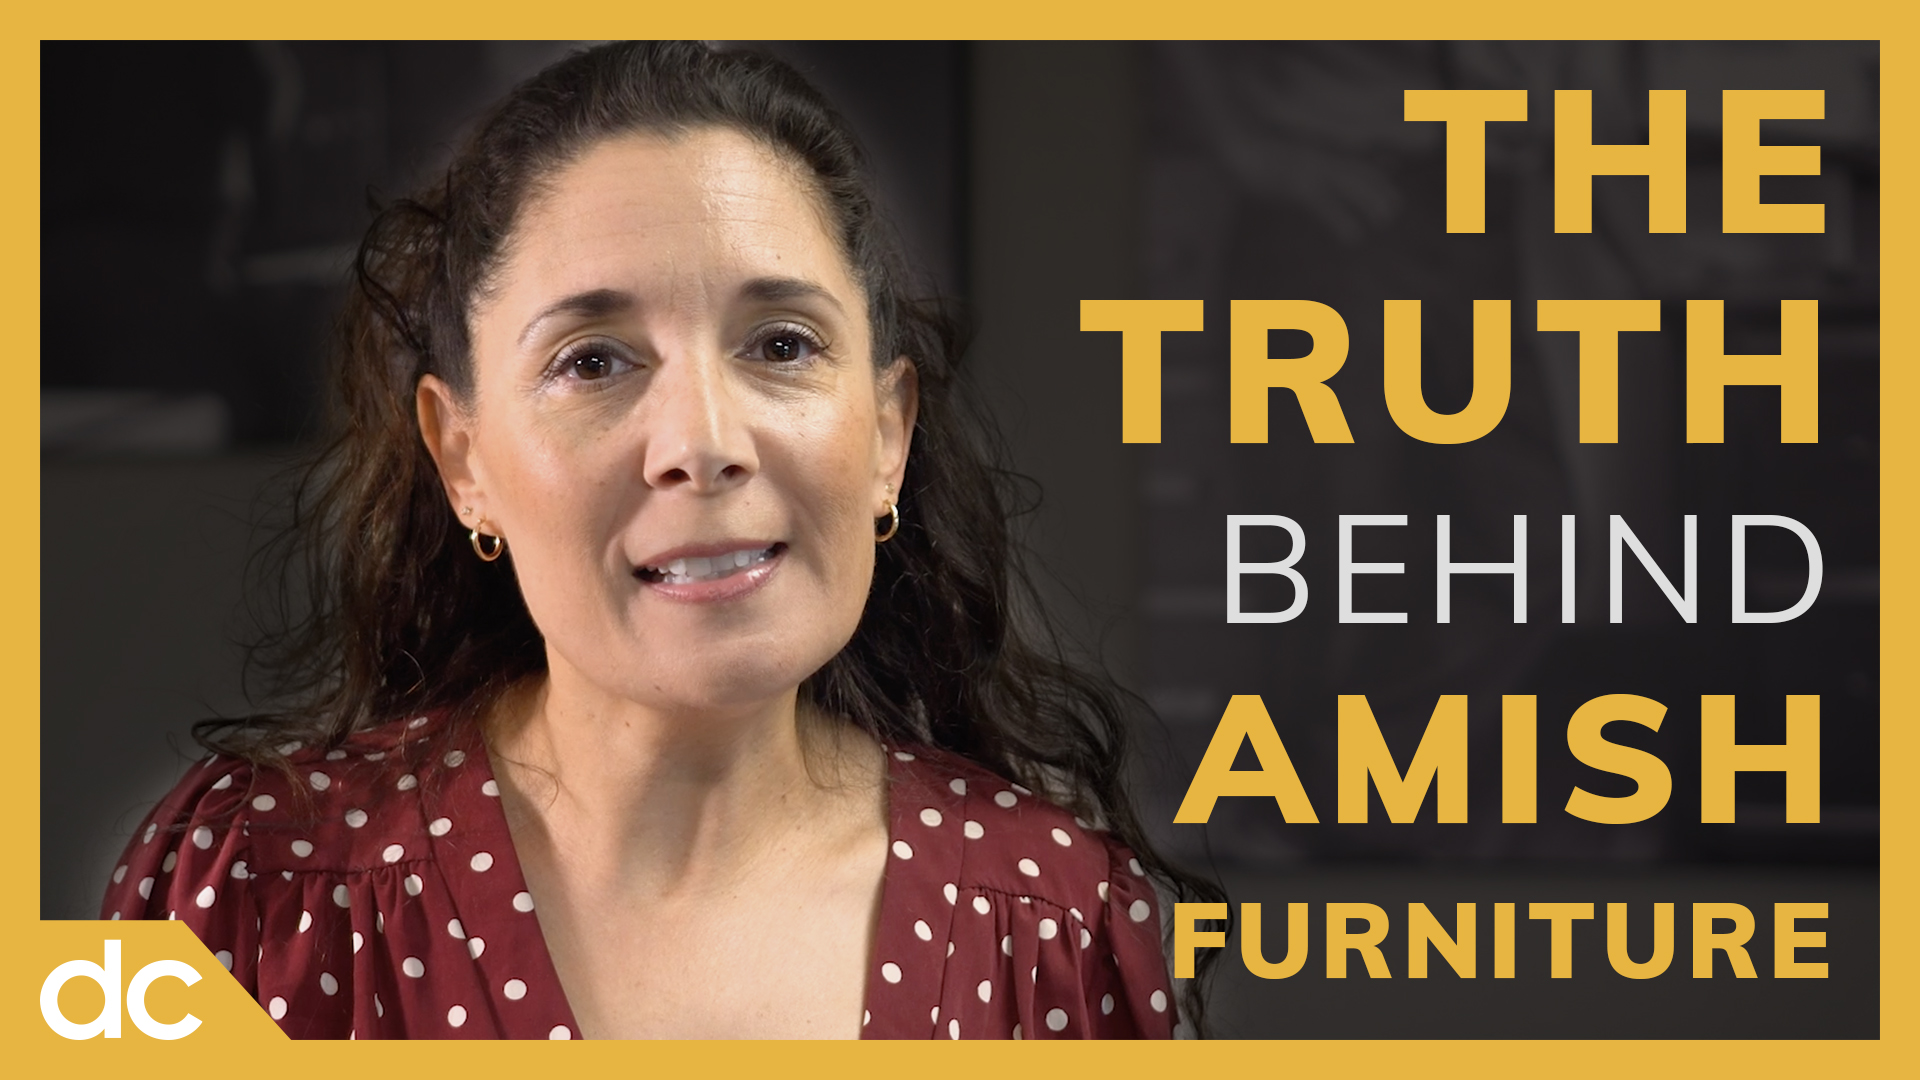 The Truth Behind Amish Furniture Video Title